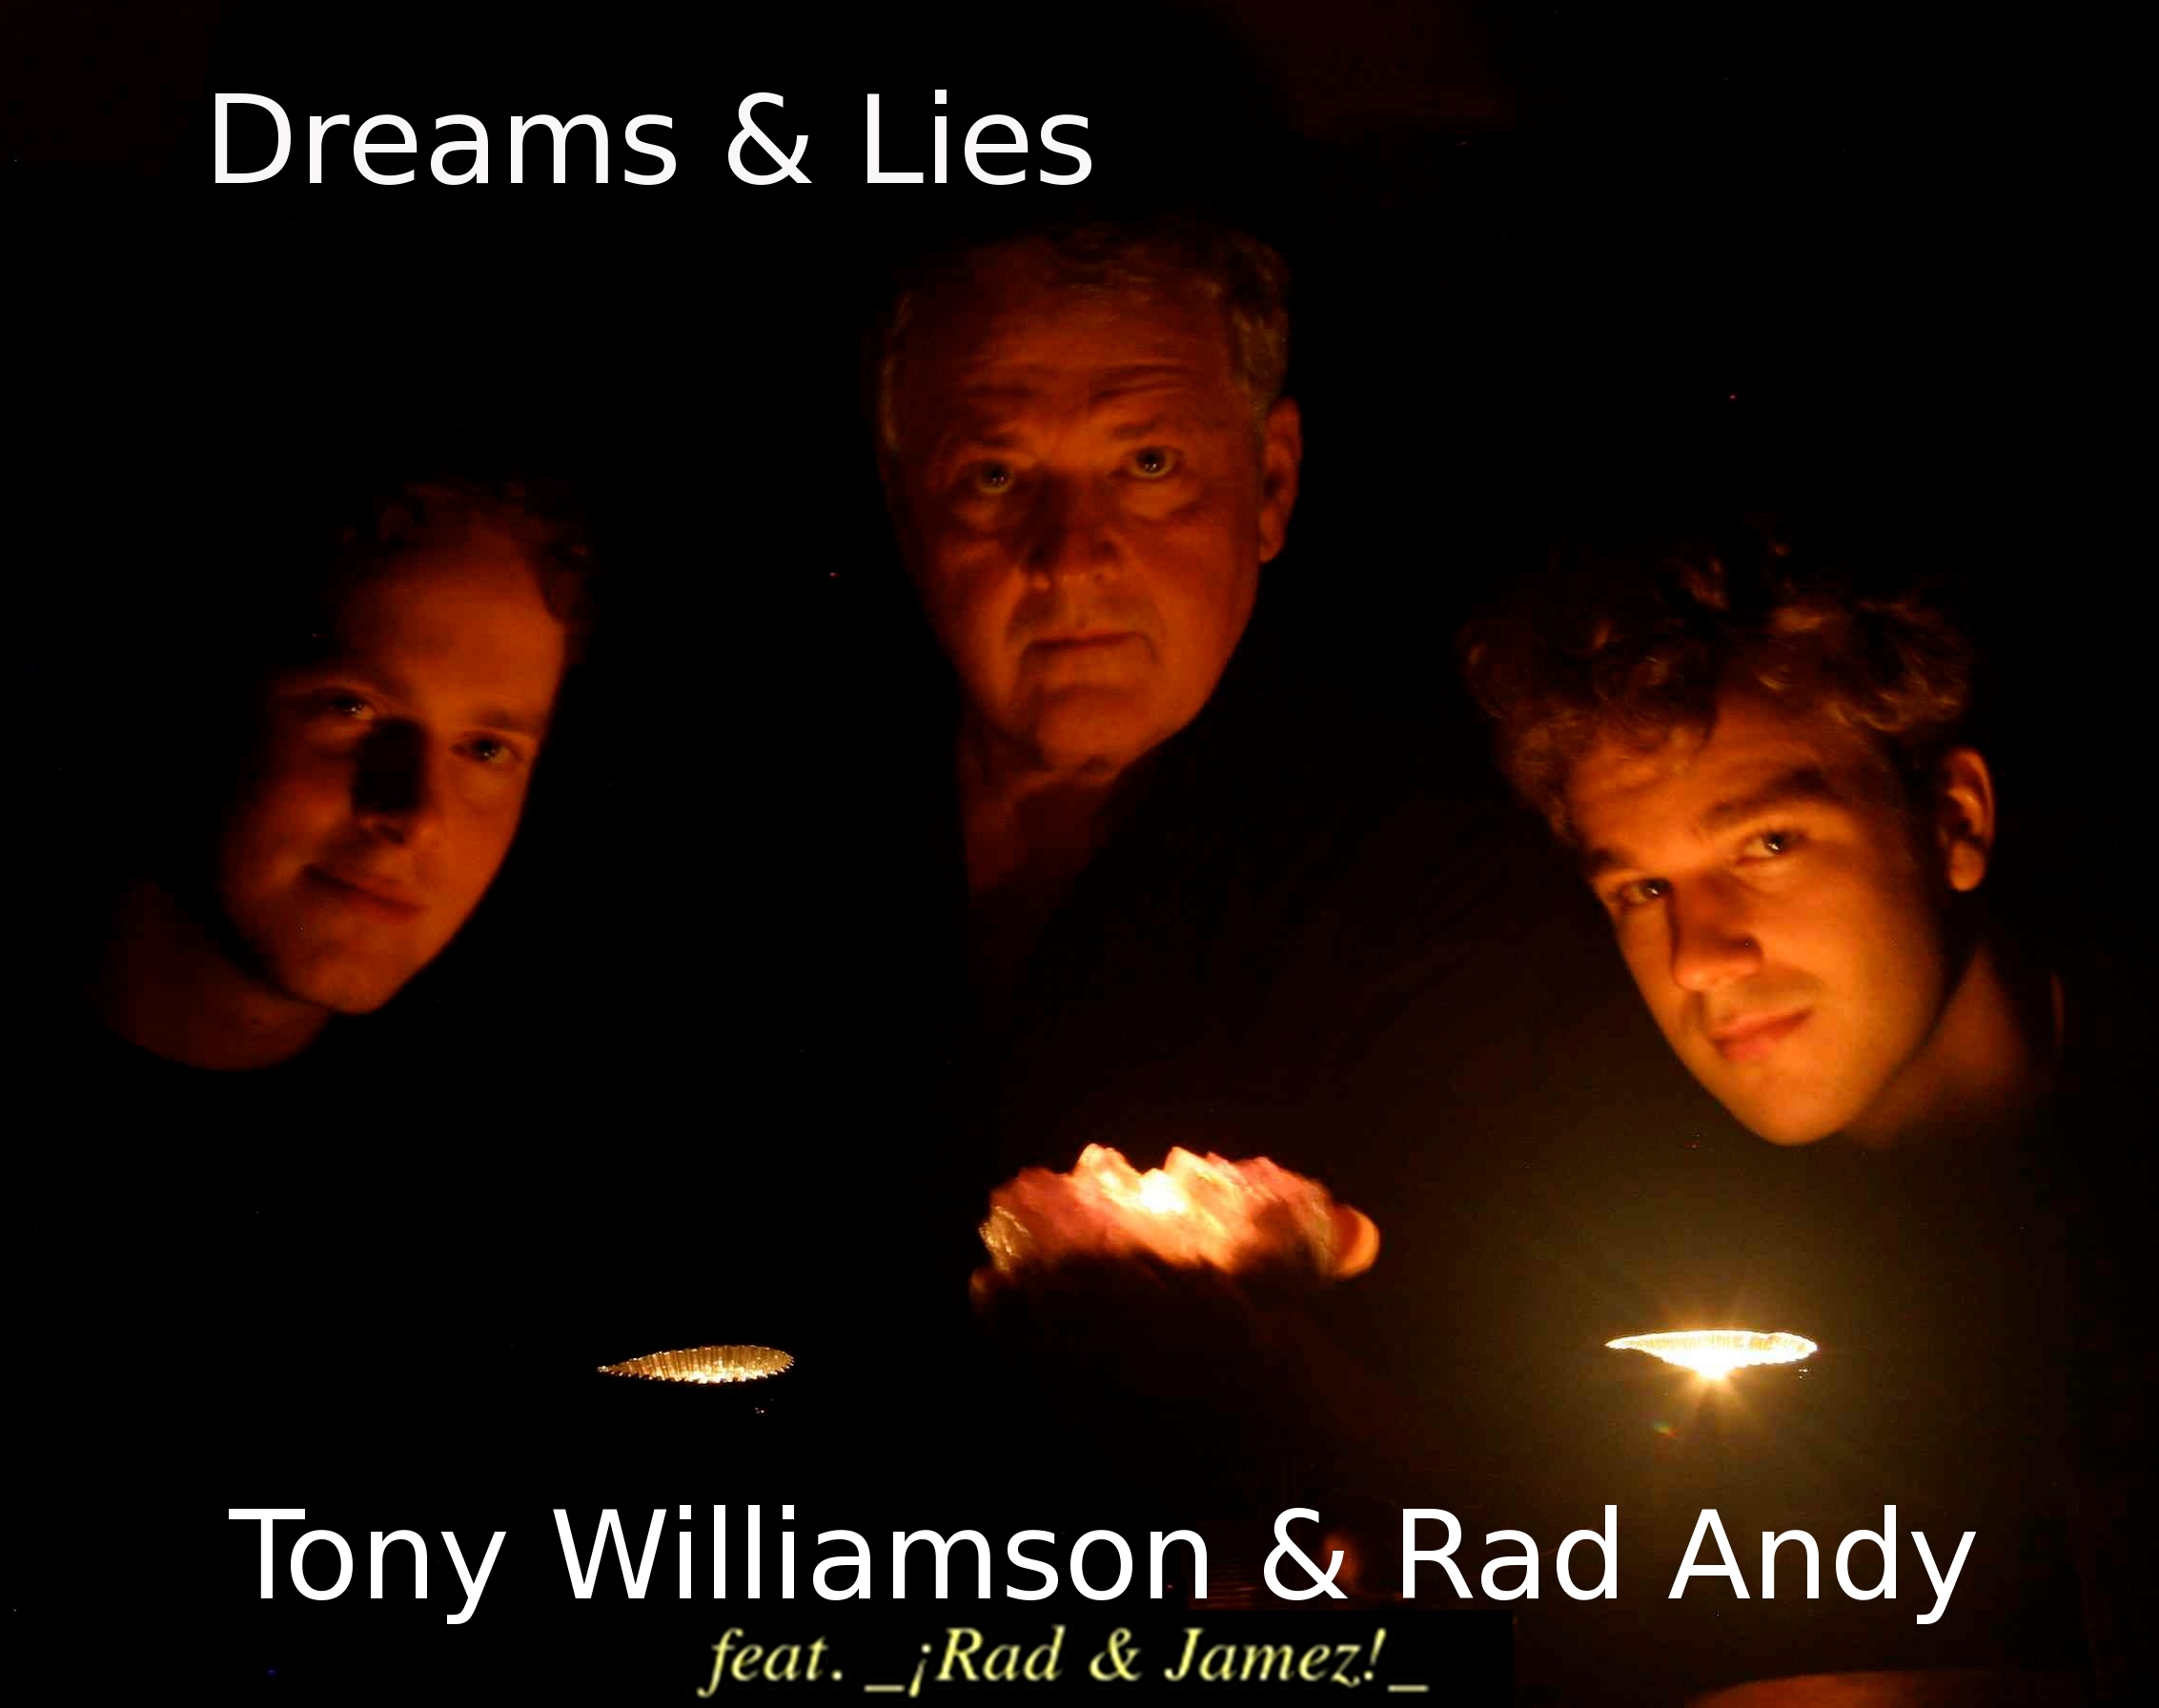 "The signature album of ¡Rad & Jamez!'s Real Groove Music style is an all original collaboration of Tony Williamson & Rad Andy, featuring James Dawkins!  This album is an 11 track disc in a sleek trifold package.  Combies traditional instruments such as mandolin and acoustic guitar with rocking drums, electric bass and delicate countermelodies.  Fuses jazz and acoustic styles with bluegrass influence.    Legendary mandolin player Tony Williamson blazinges forth with his scintillating jams. Joining him with dynamic vocals and inventive guitar riffs will be Rad Andy.  Underneath these fascinating textures are the smooth basslines of James Dawkins, whose runs and solos never fail to delight and dazzle. The three's recent release of the new album ""Dreams & Lies"" has been received with enthusiasm wherever the trio has toured, including Triad Acoustic Stage in Greensboro, Randy Wood's Concert Hall in GA, and the elegant Mansion in Chapel Hill."